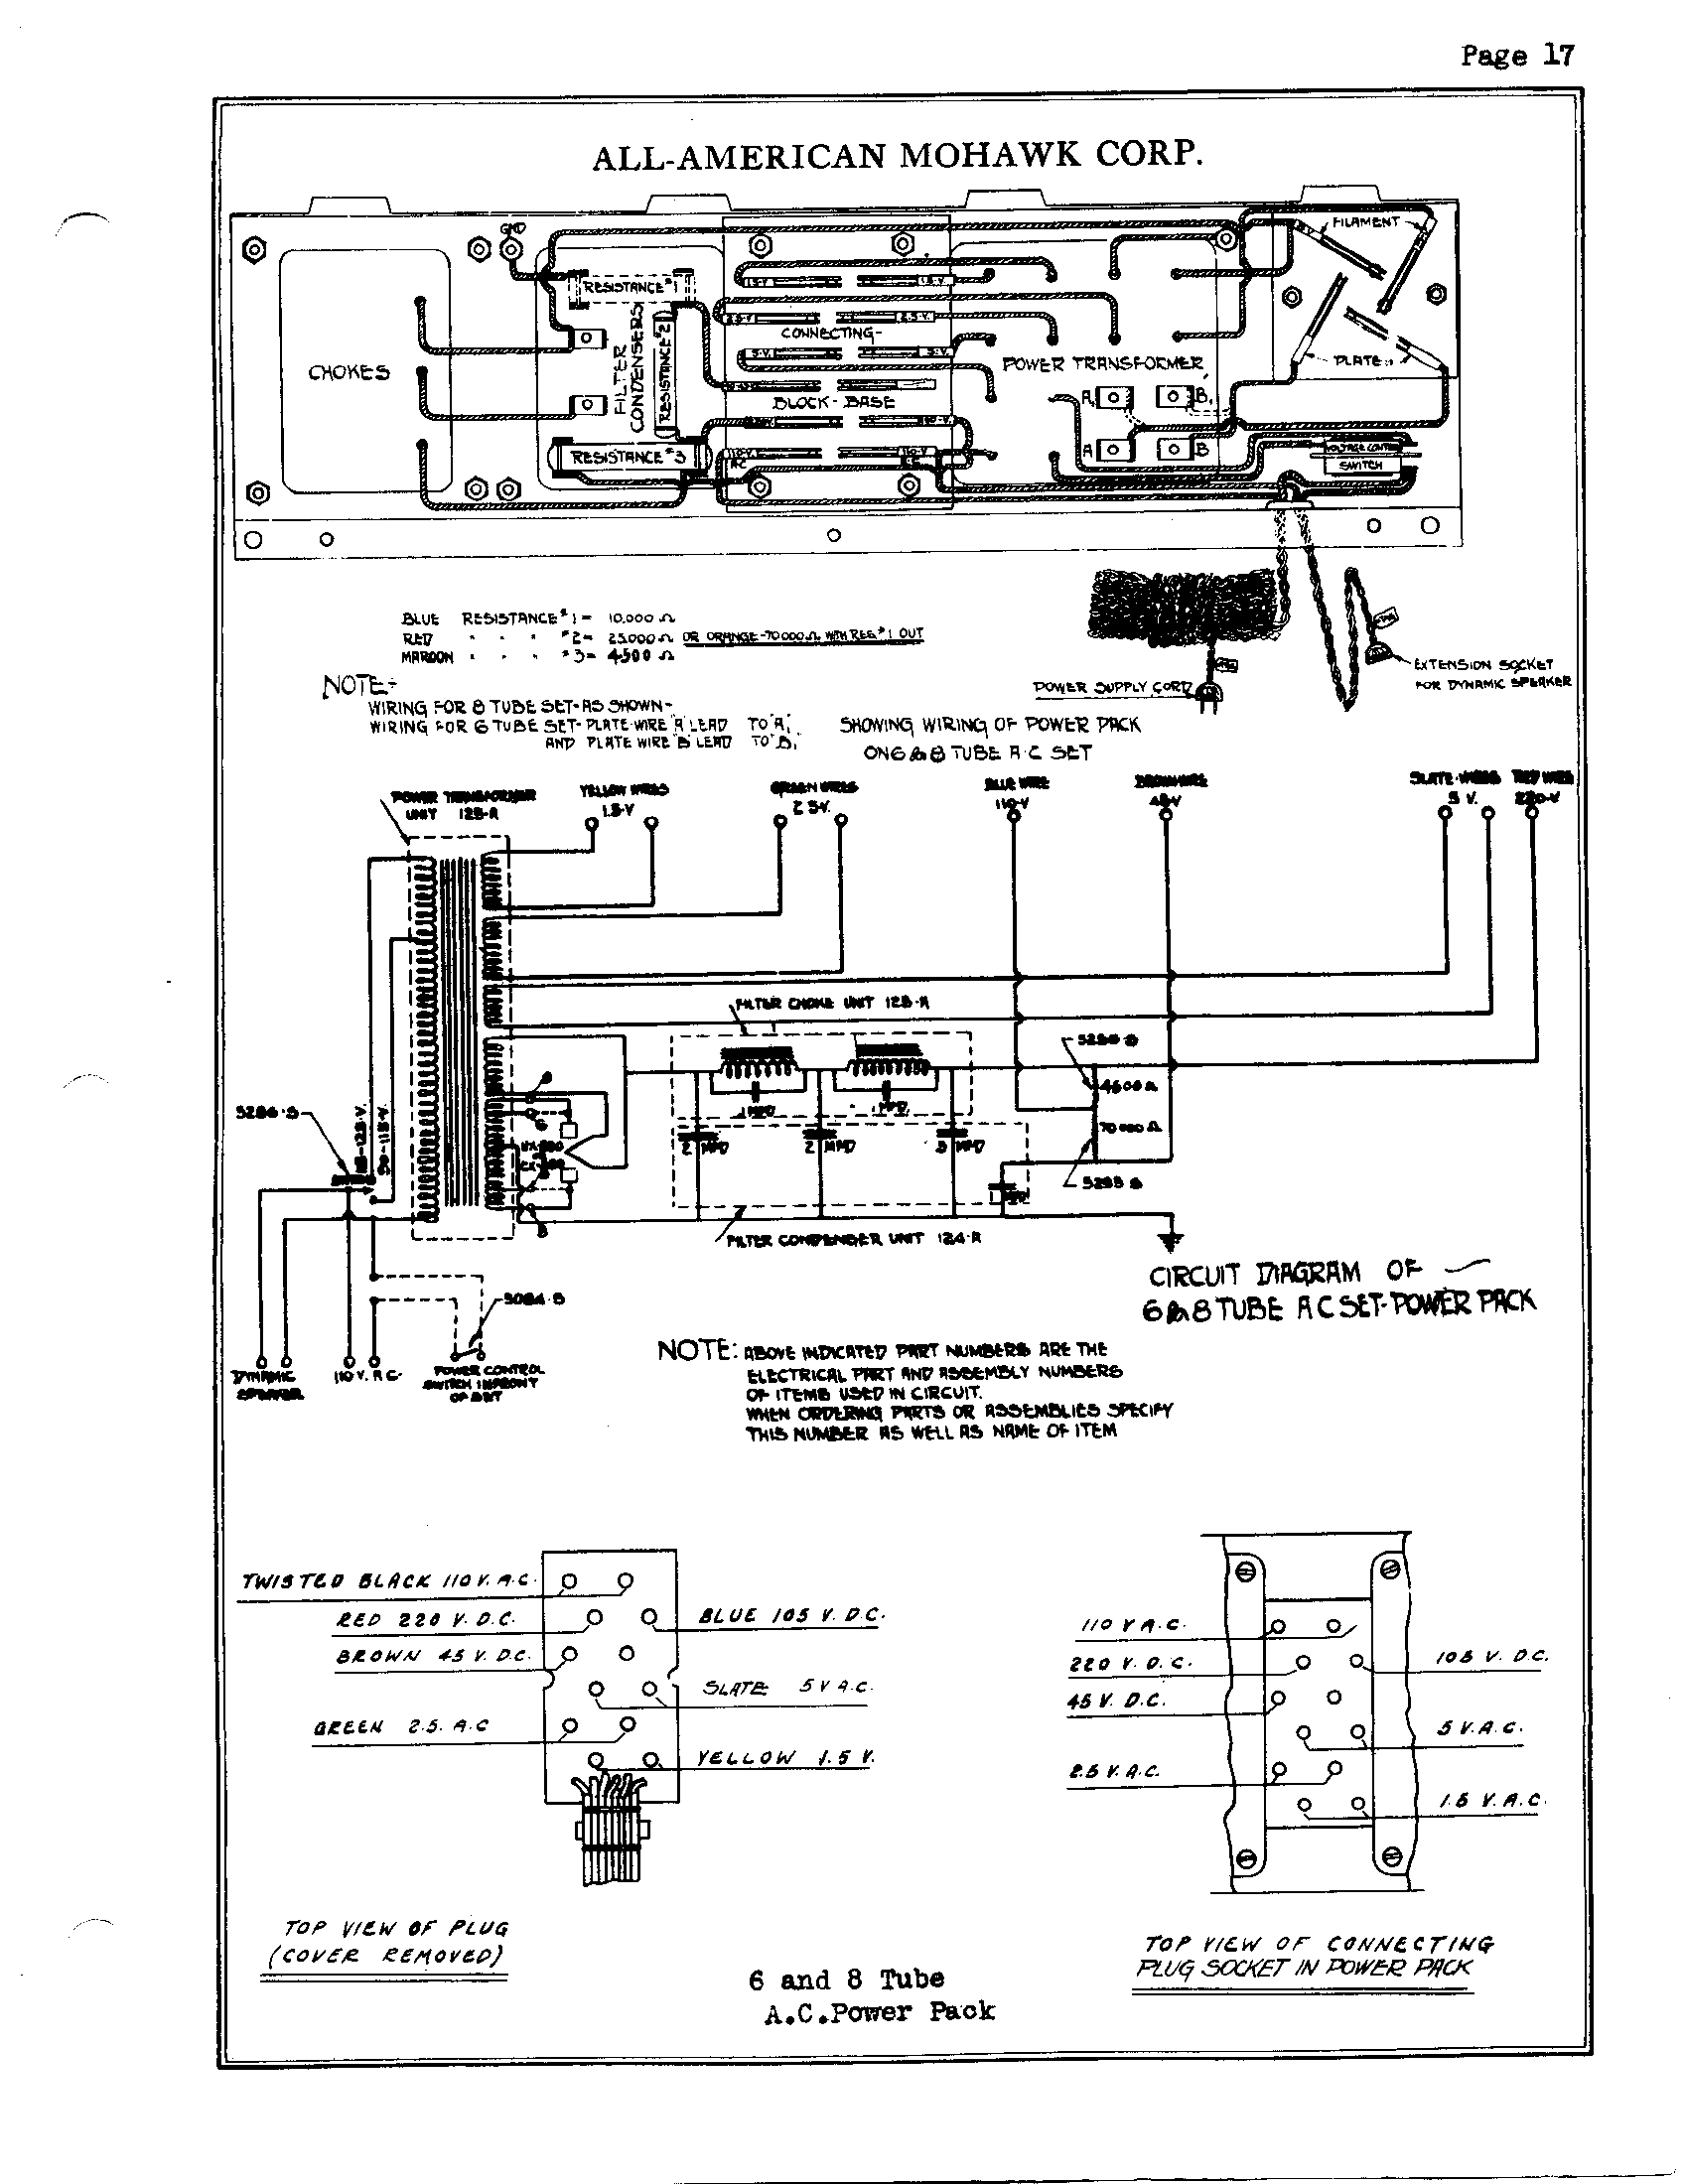 wiring diagram for power pack jacobsen 628d blade switch wiring diagram for power all american mohawk 6-8 tube ac power pack   antique ...